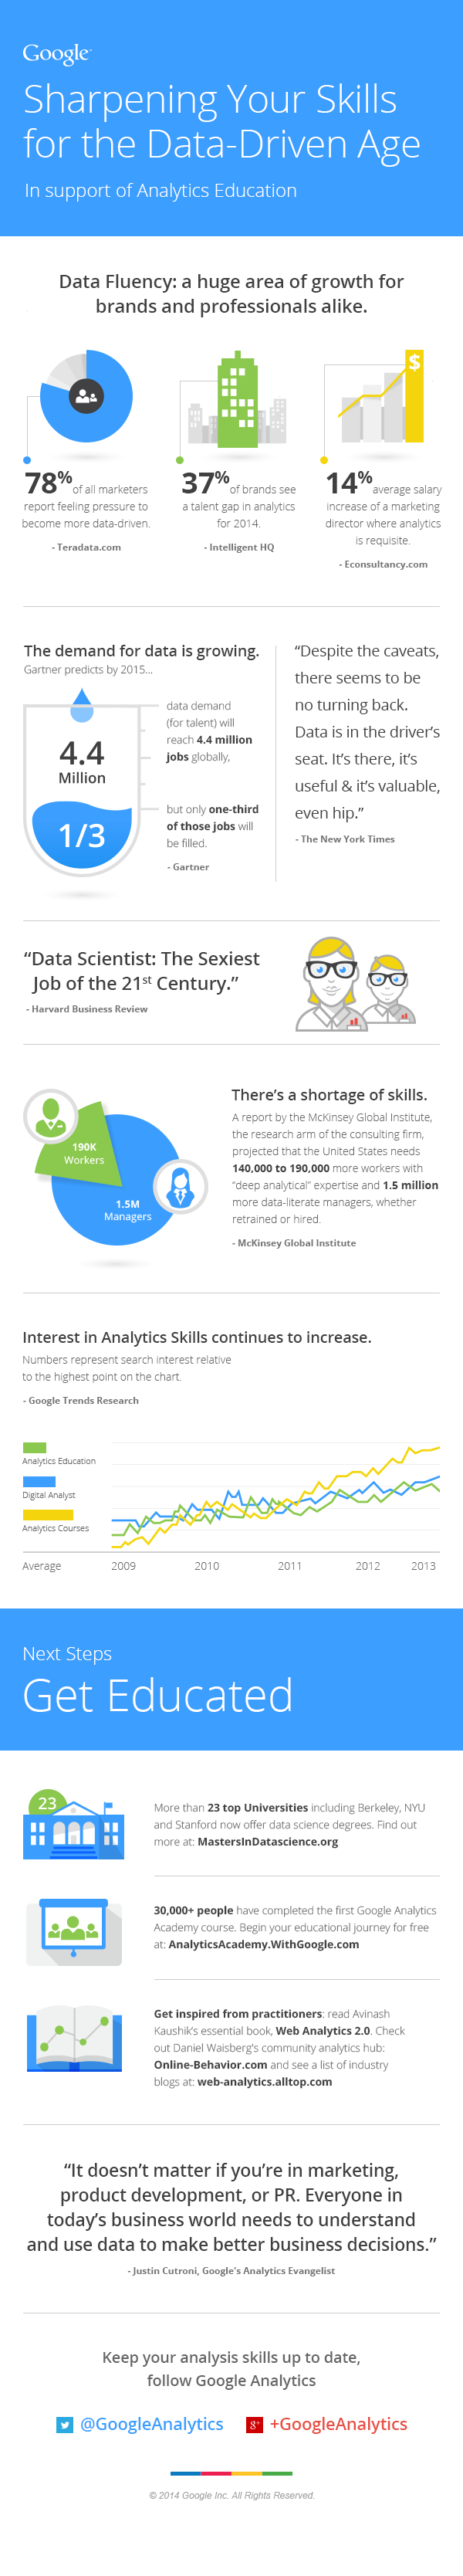 Data Scientist: The Sexiest Job of the 21st Century [INFOGRAPHIC]